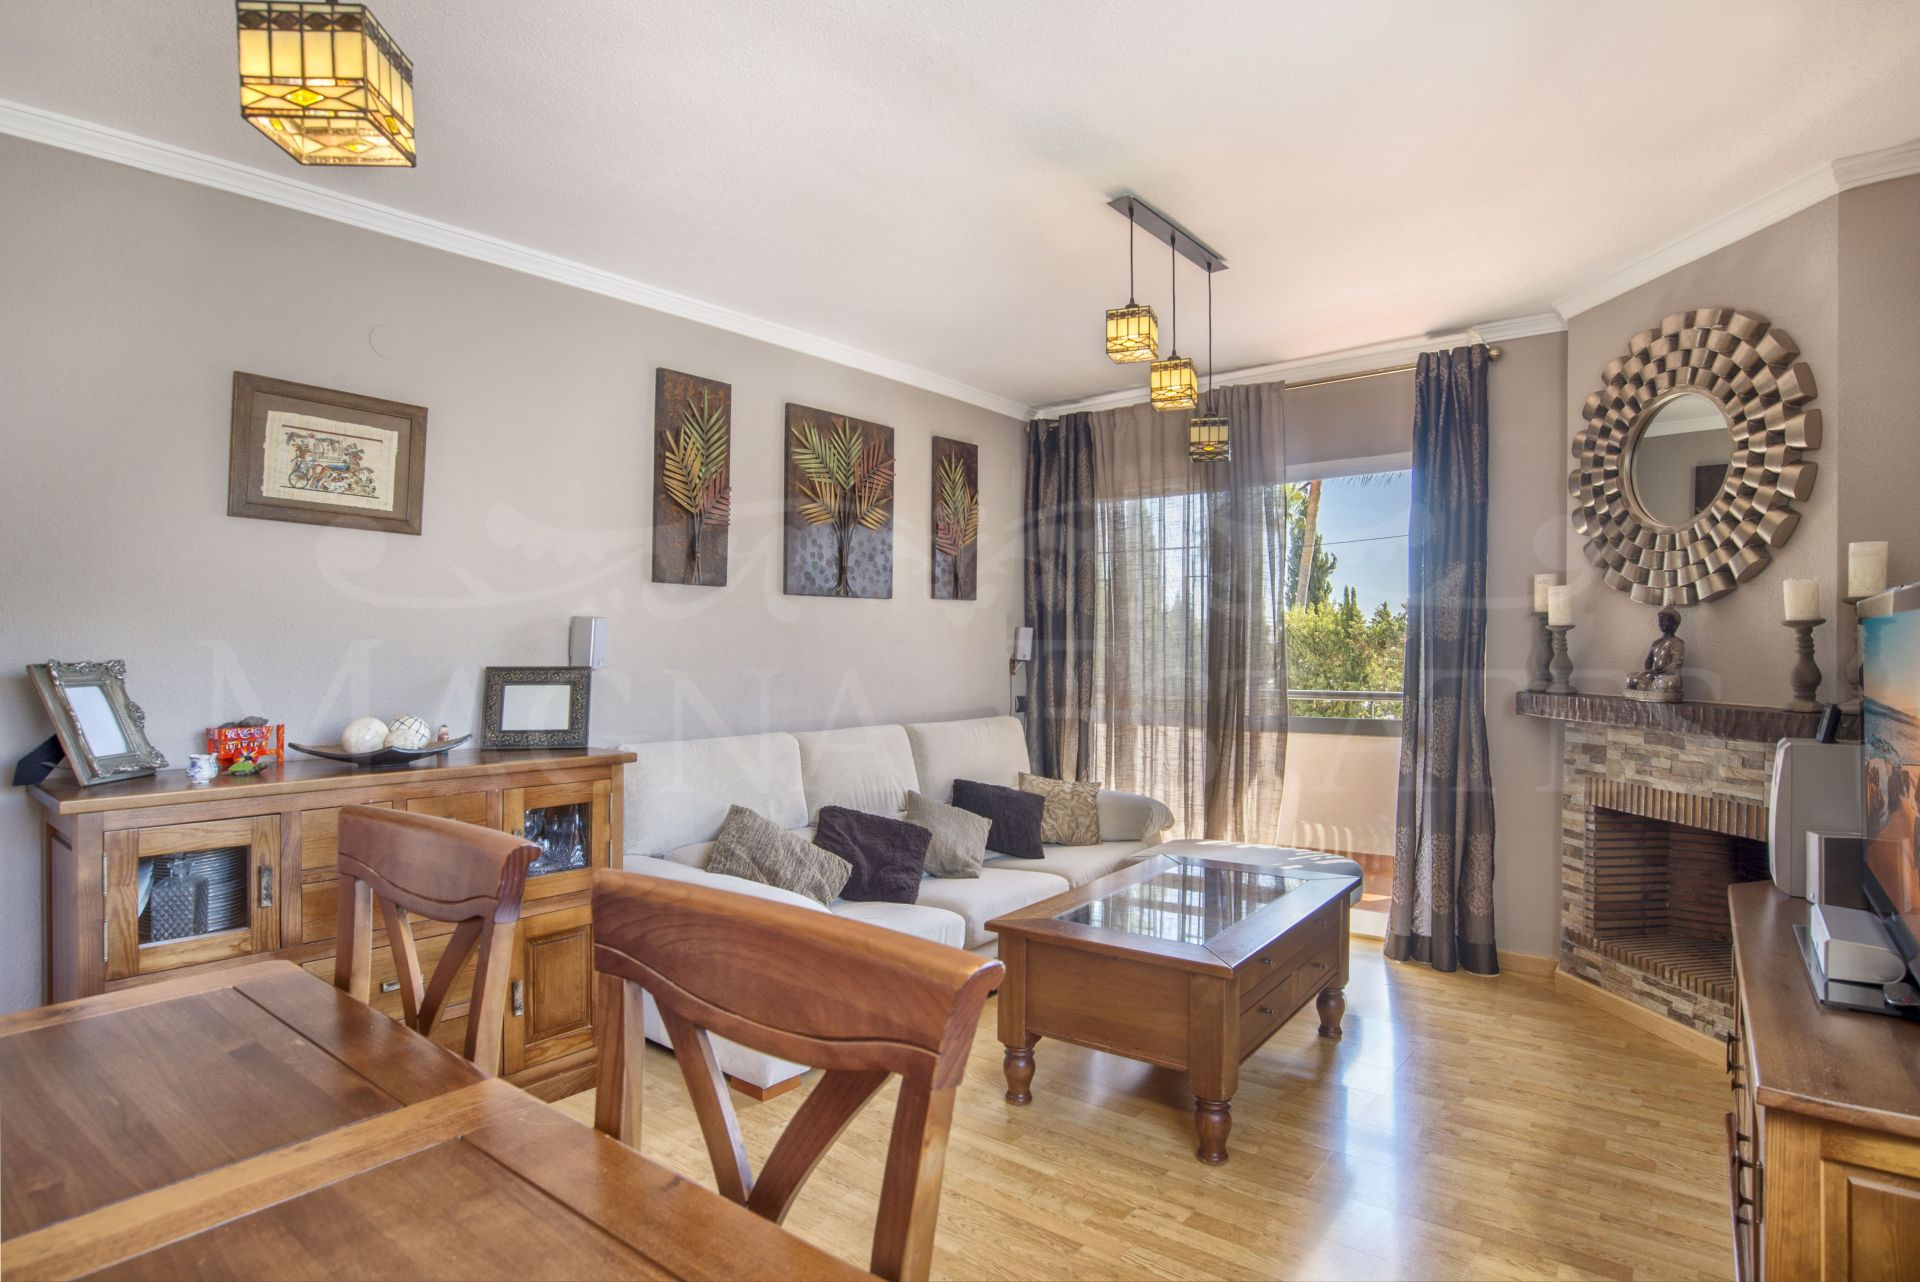 Apartment in Nueva Andalucía, renovated at a very good price